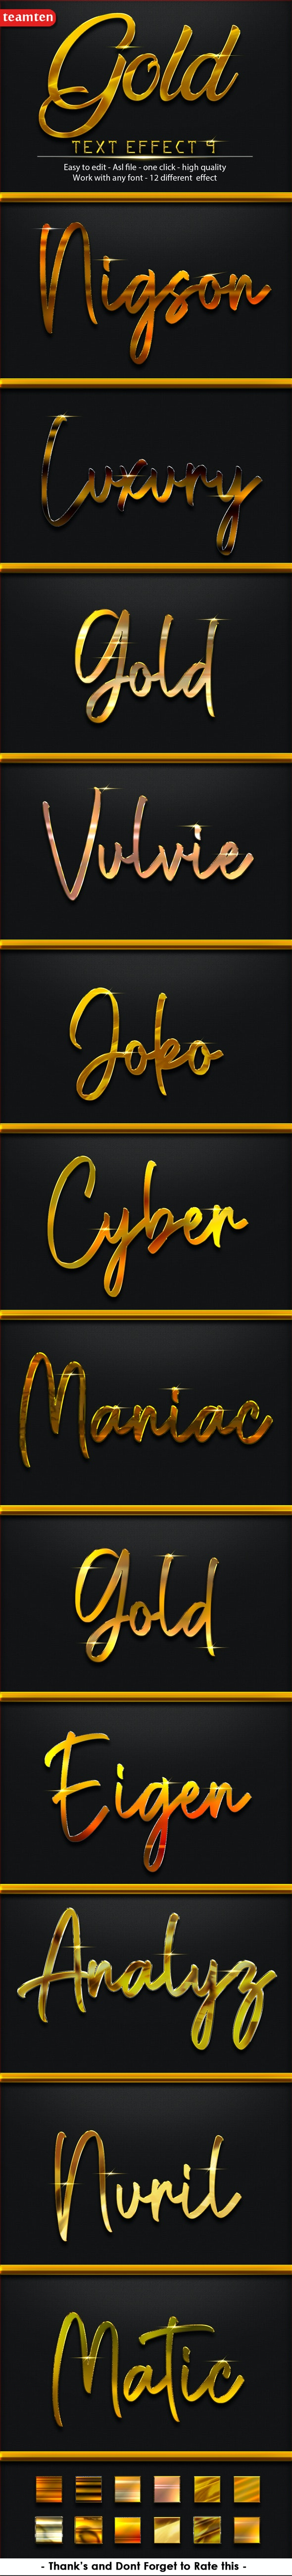 12 Gold Effect 9 - Text Effects Styles